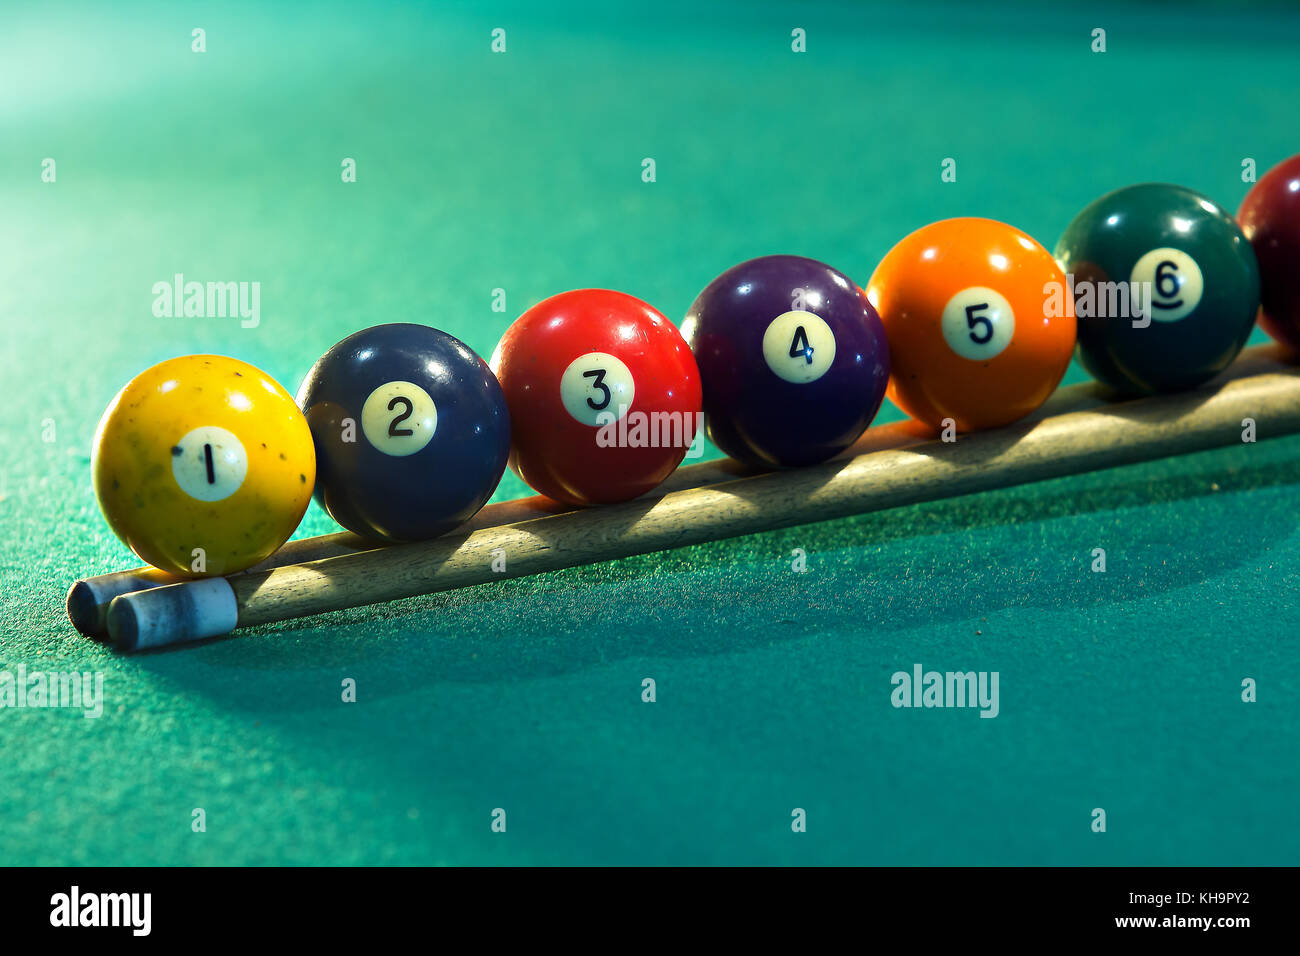 Horizontal photo of a billiard table with the billiard balls arranged in sequence - Stock Image